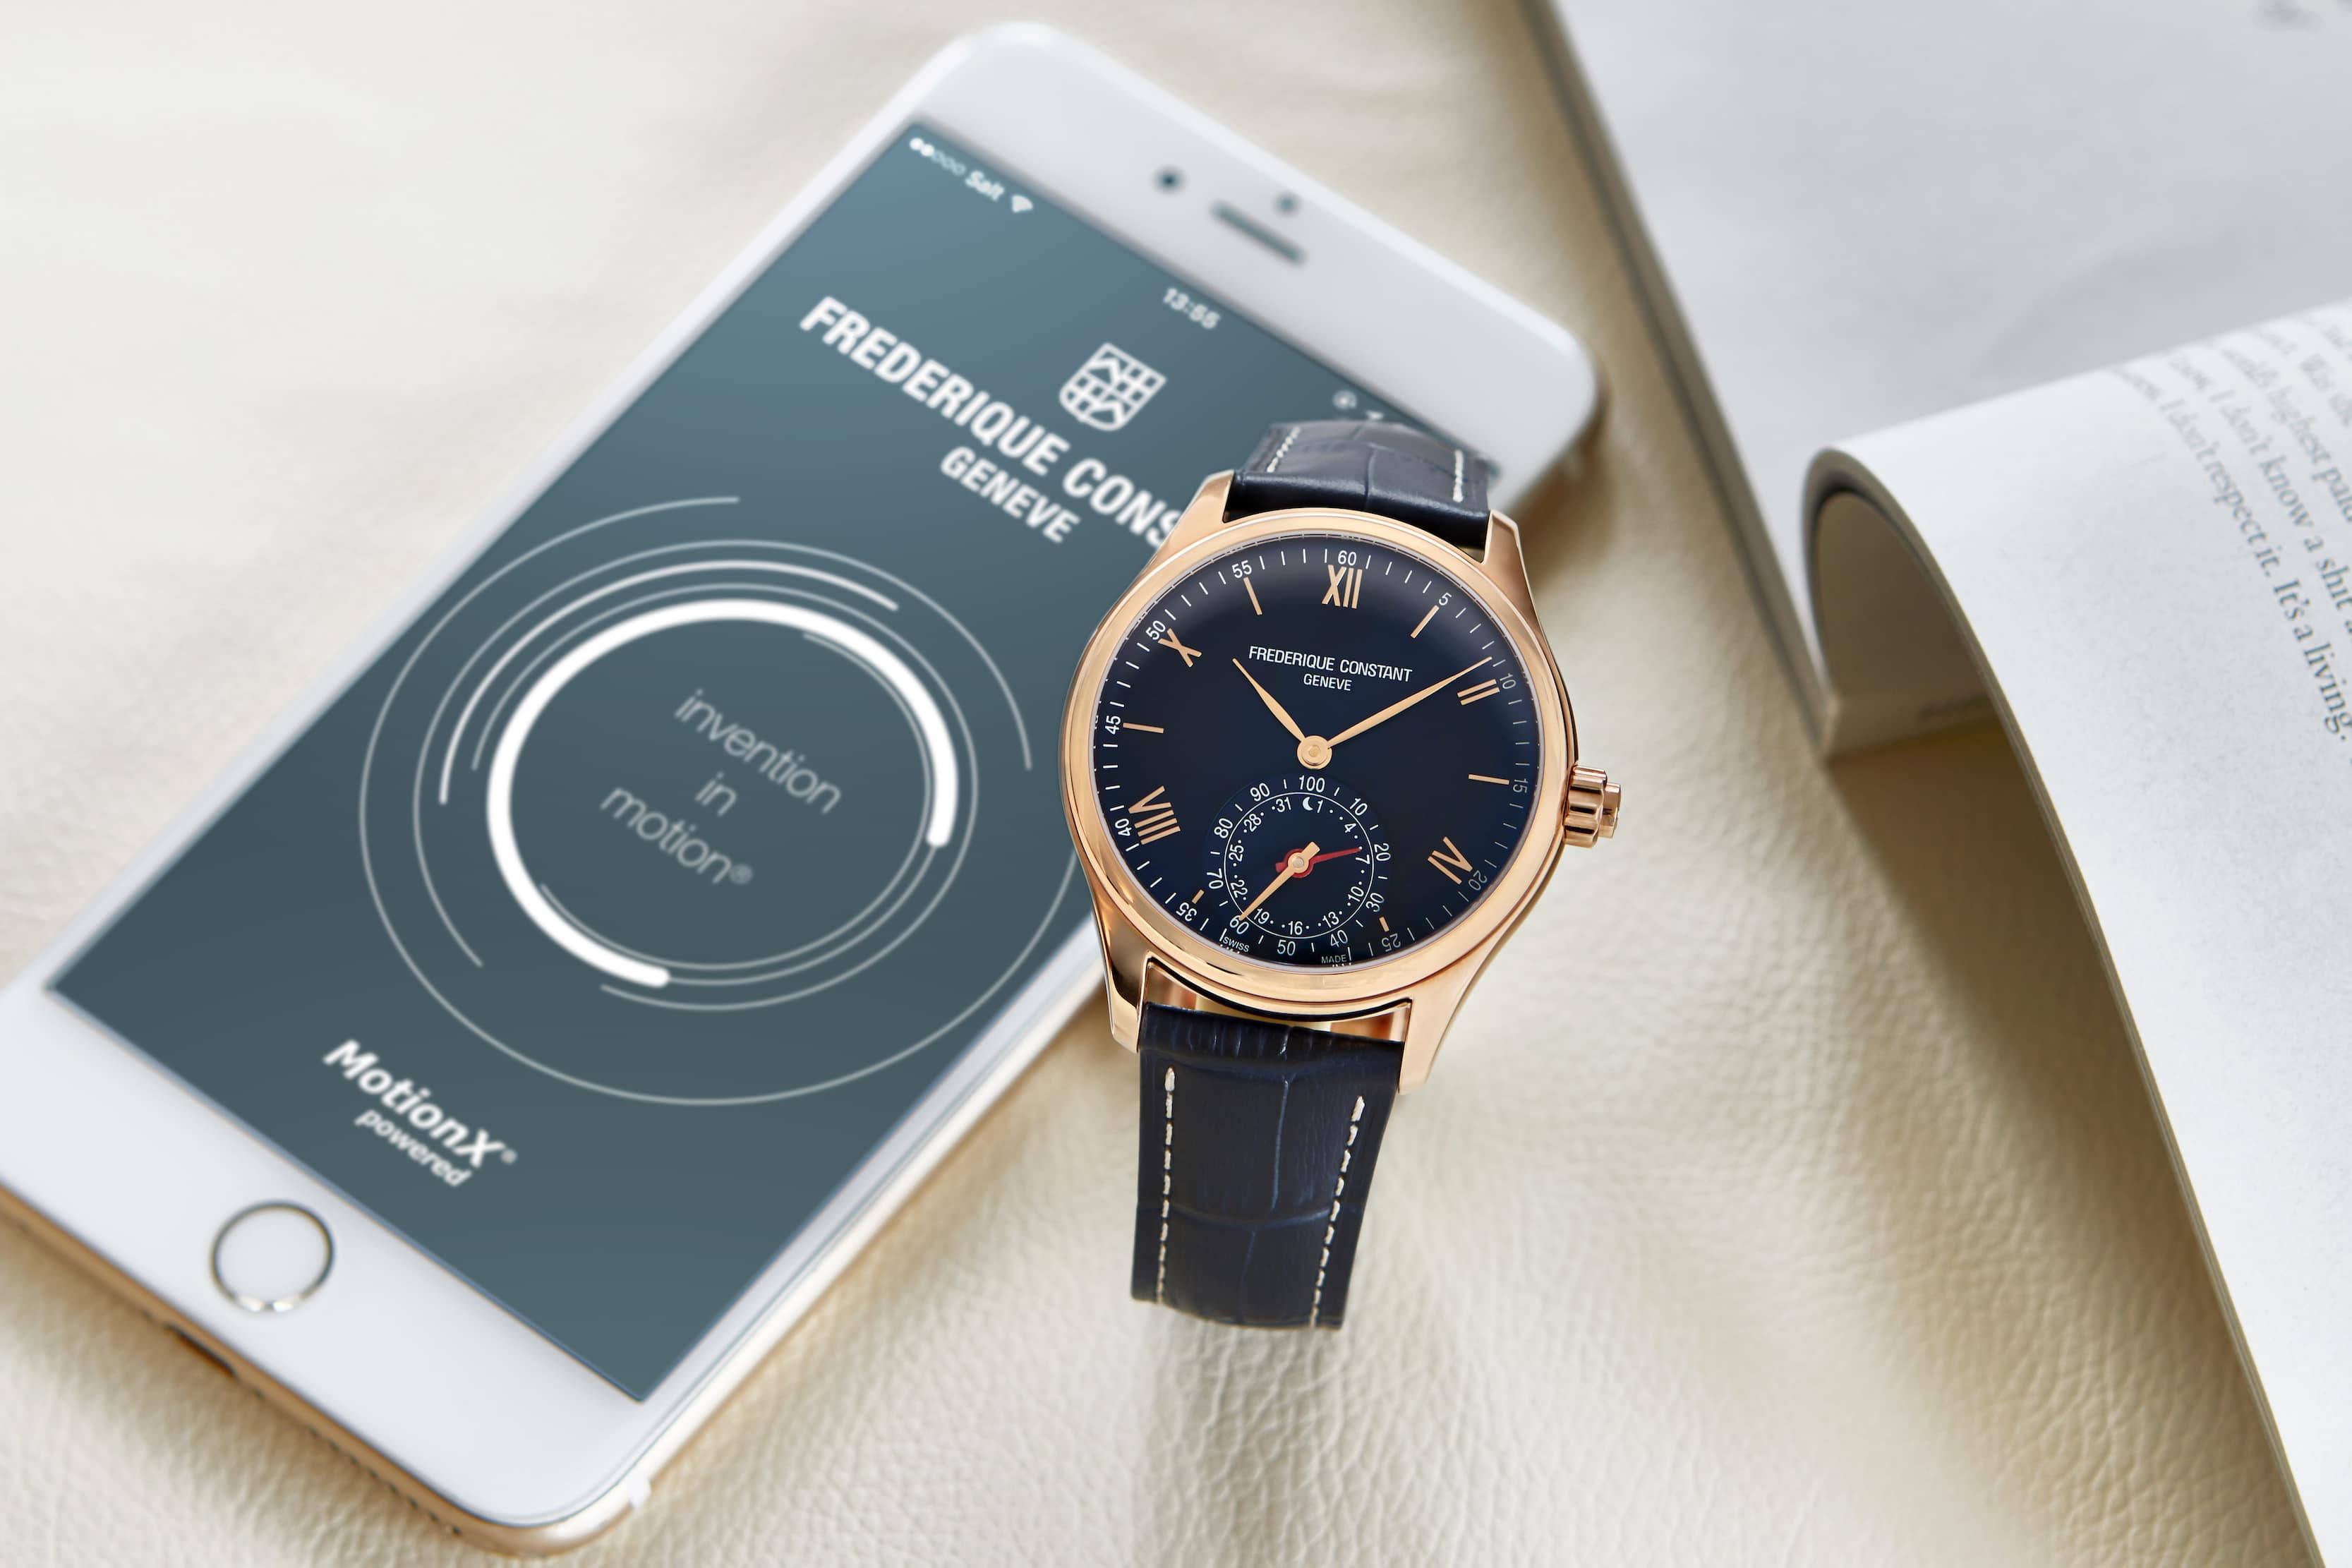 gear smart attachement wtf watch off designs baselworld including watches samsung pocket shows a hybrid concept new